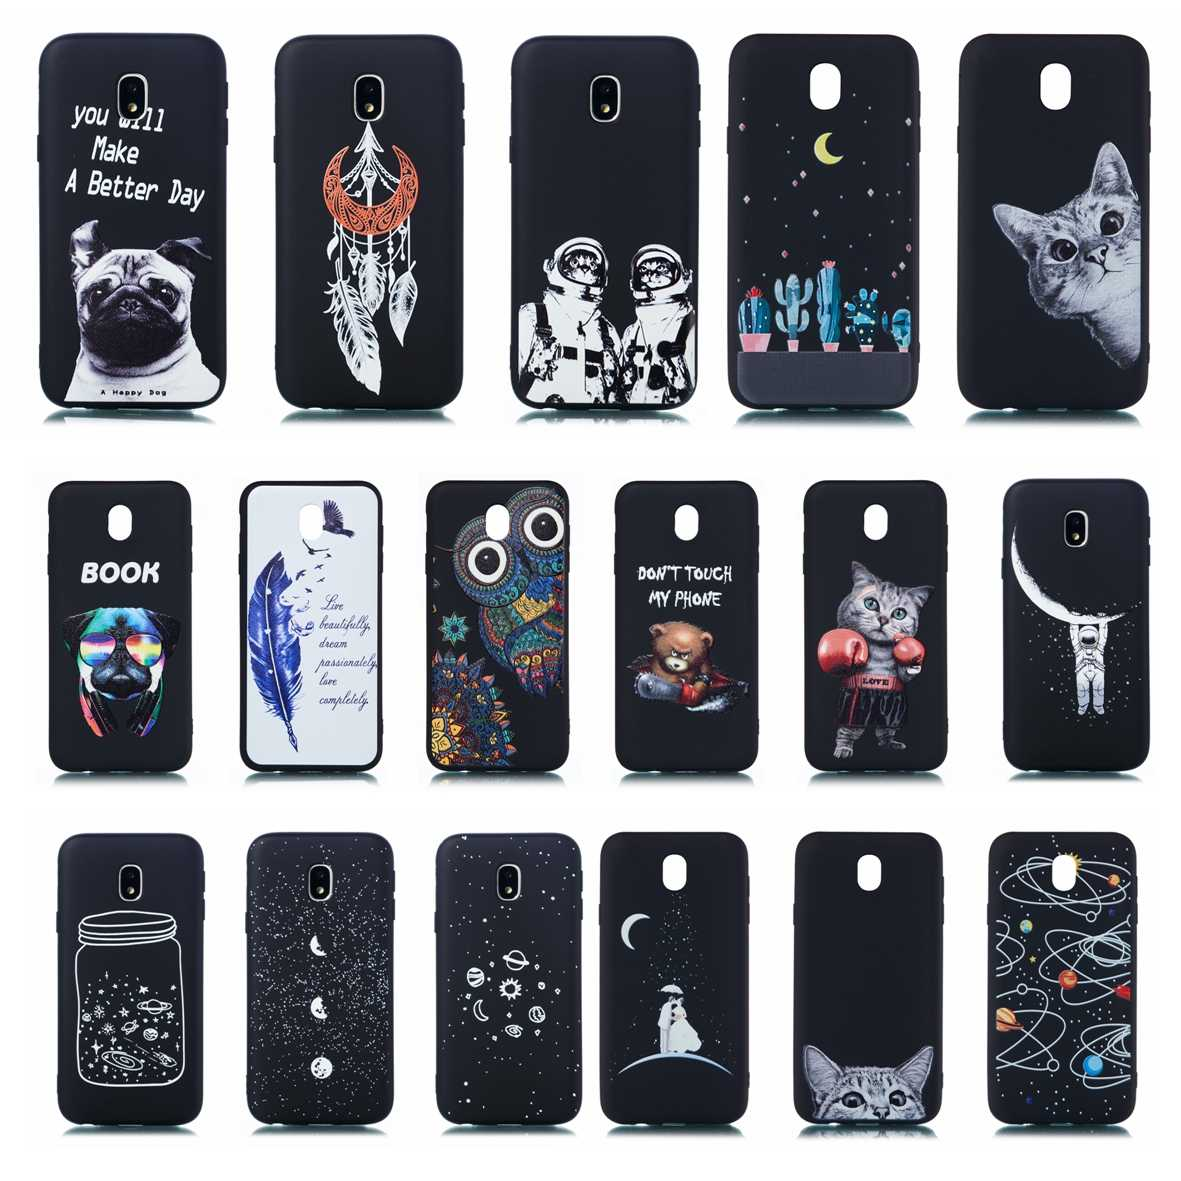 Case For Samsung Galaxy J330/J3 Pro Soft Silicone TPU Phone Cover For Samsung J3Pro/J330 J 330 Bumper Animal Printed Cases Funda